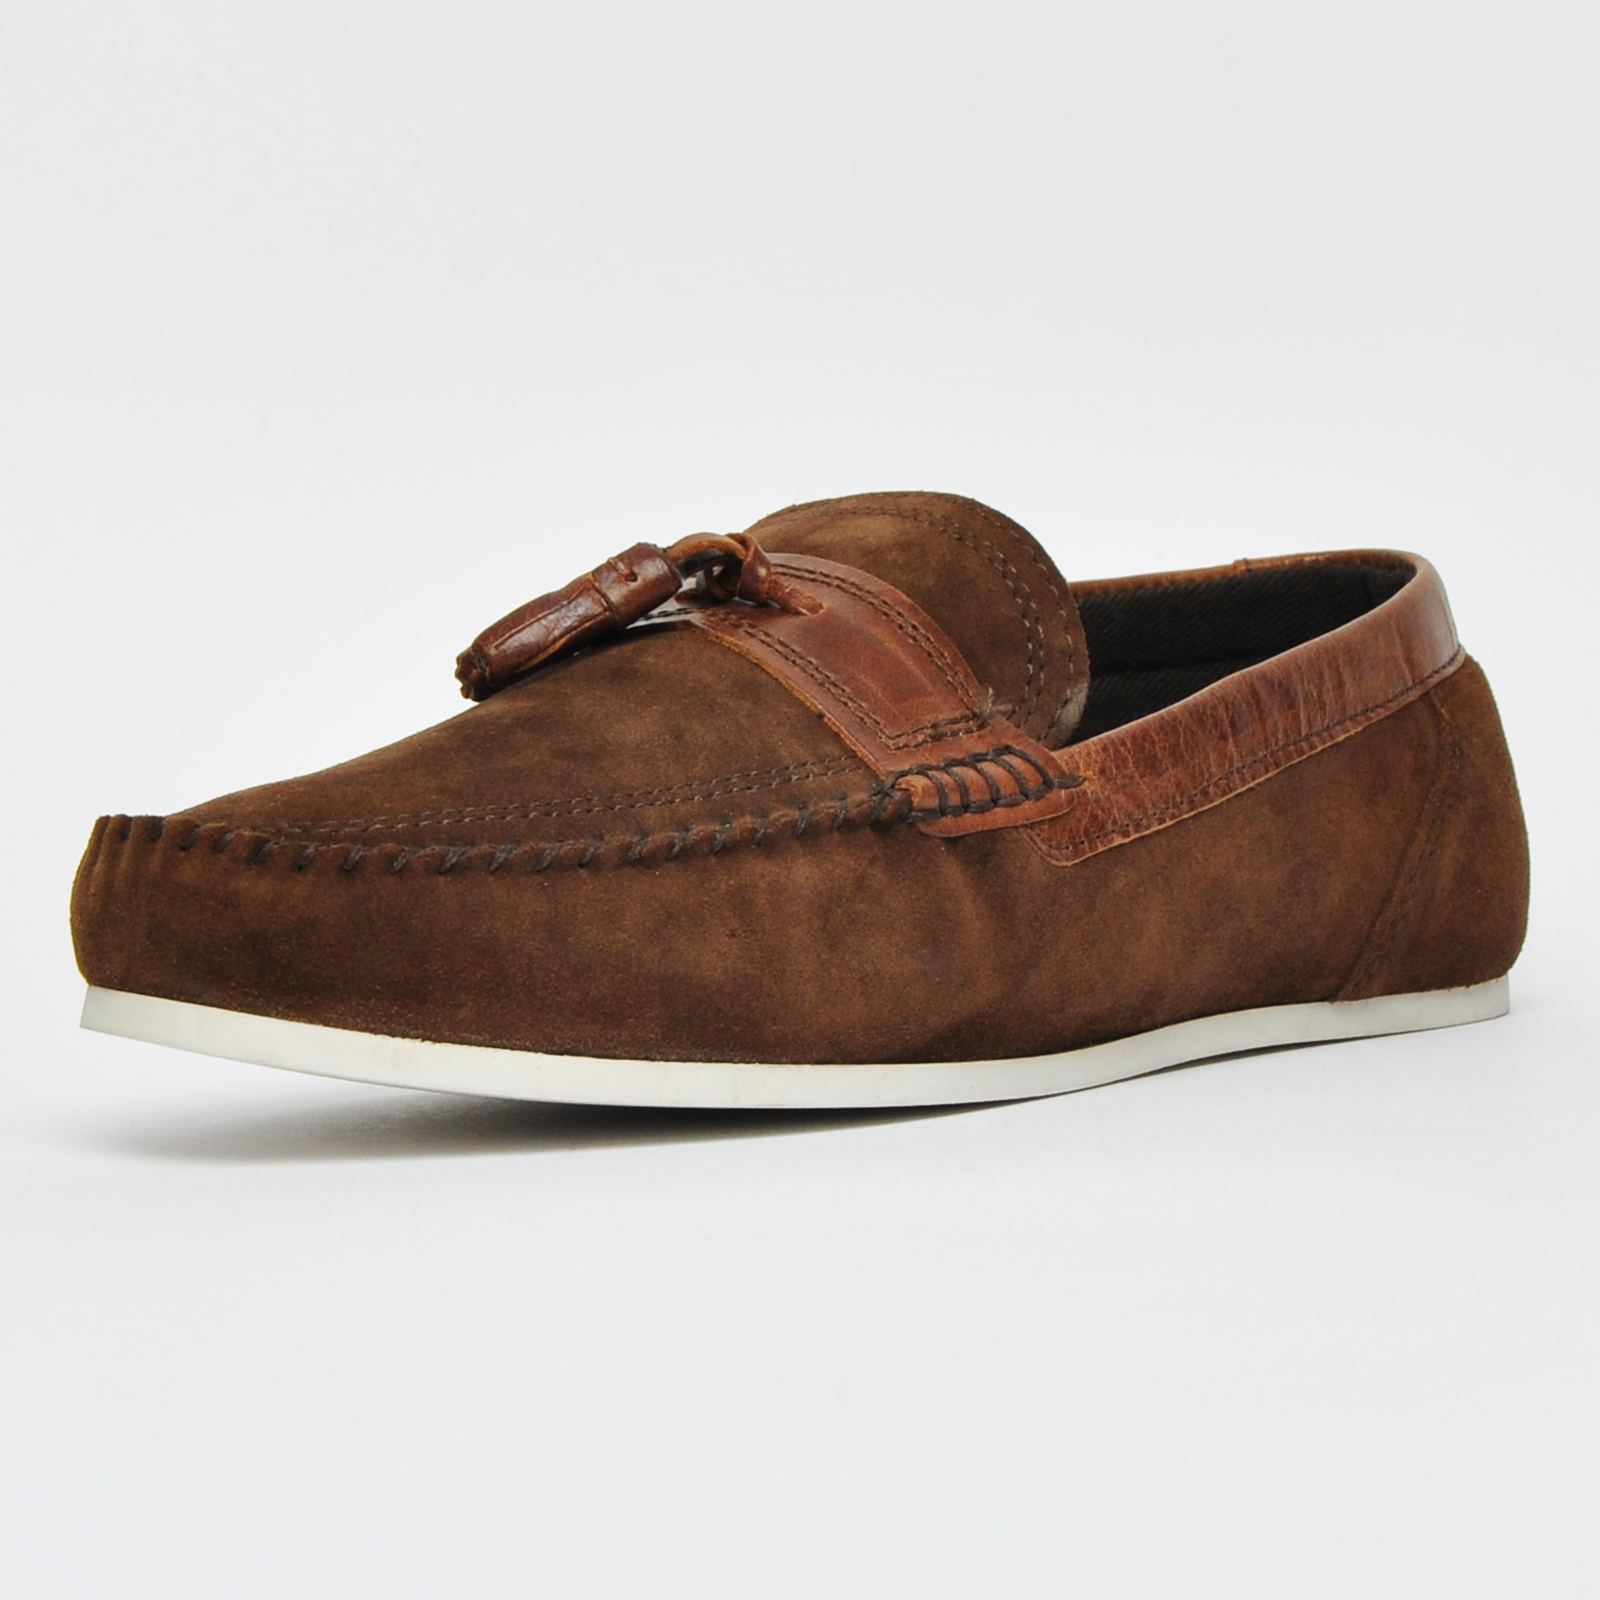 a7d80c8574c8df Details about Red Tape Houghton Mens Suede Leather Slip On Designer Loafers Casual  Shoes Brown